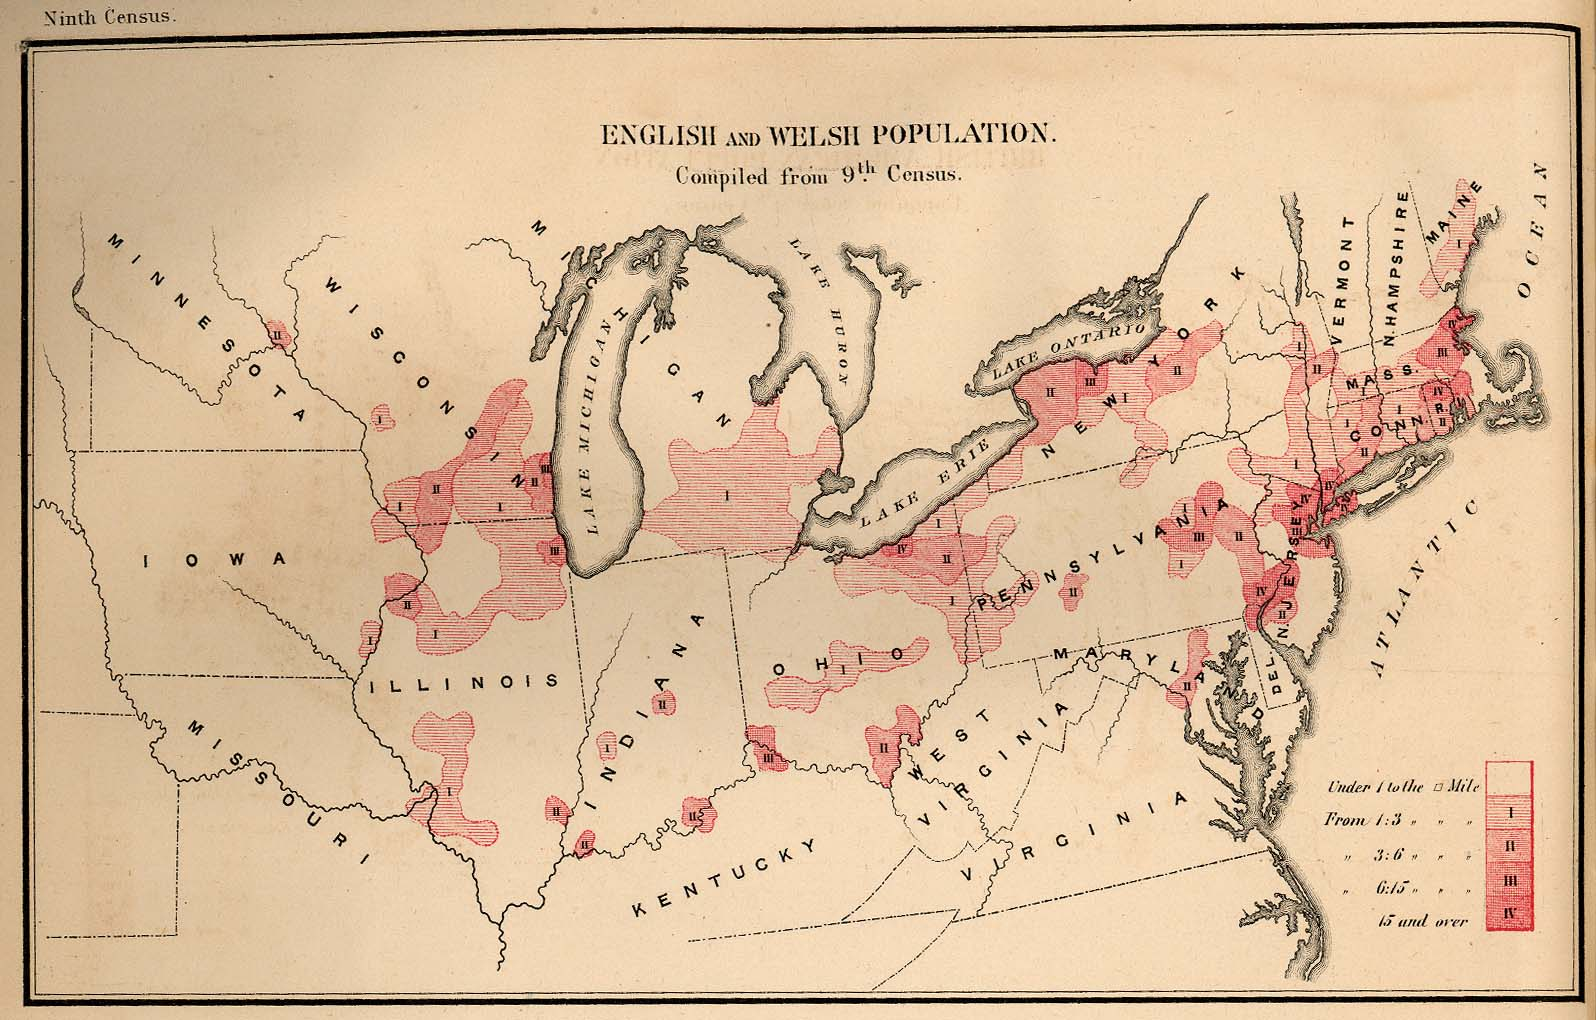 Map of the English and Welsh Population in the United States 1872